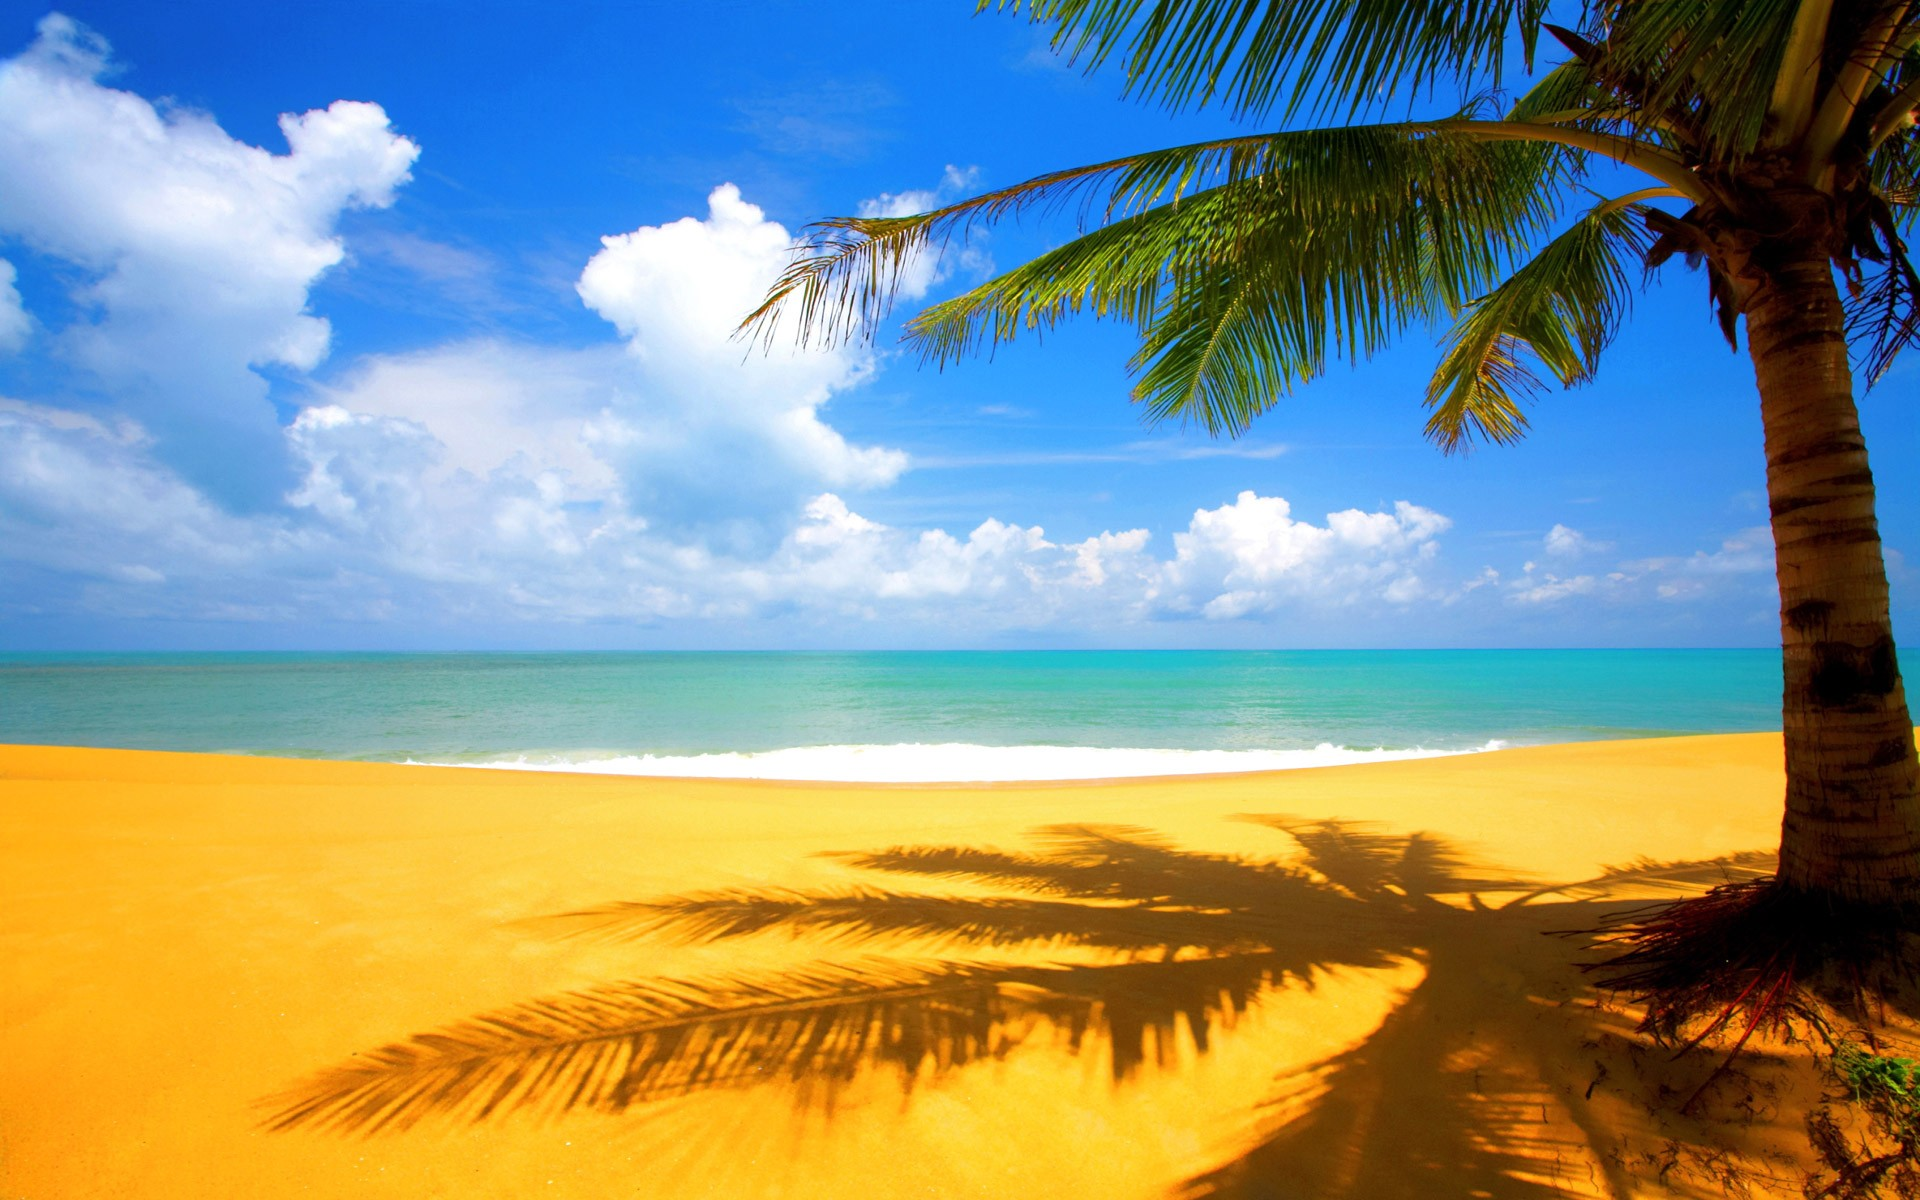 wallpapers beach photos beach pictures beach images beach images beach ...